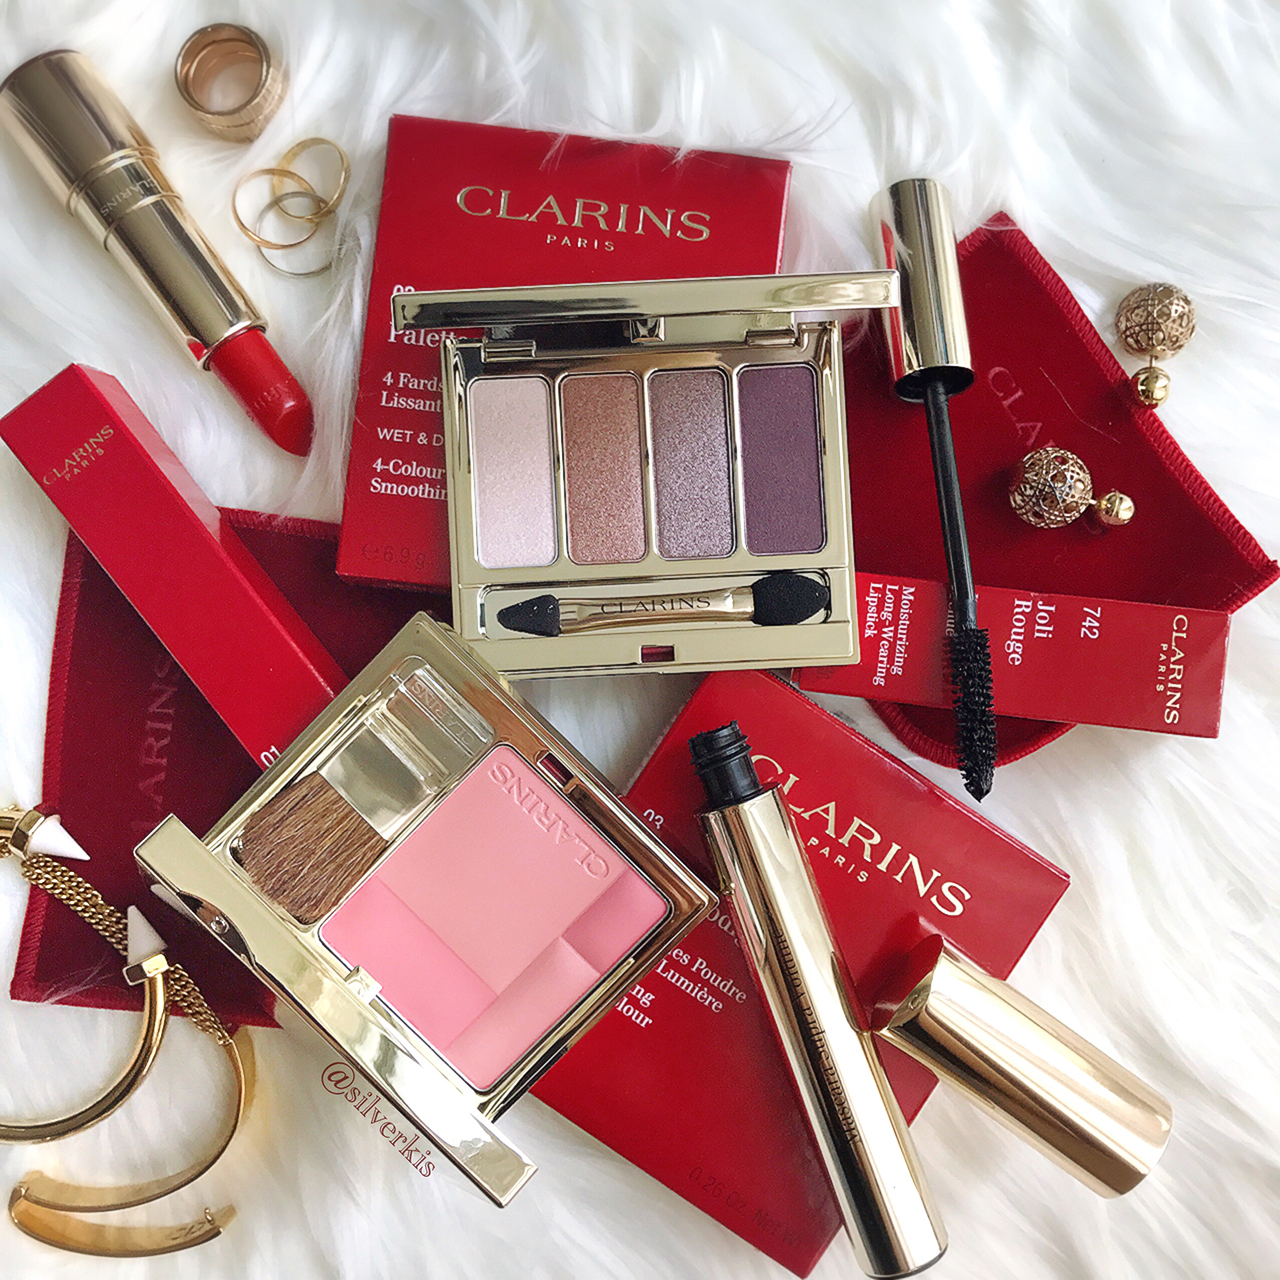 Clarins makeup picks